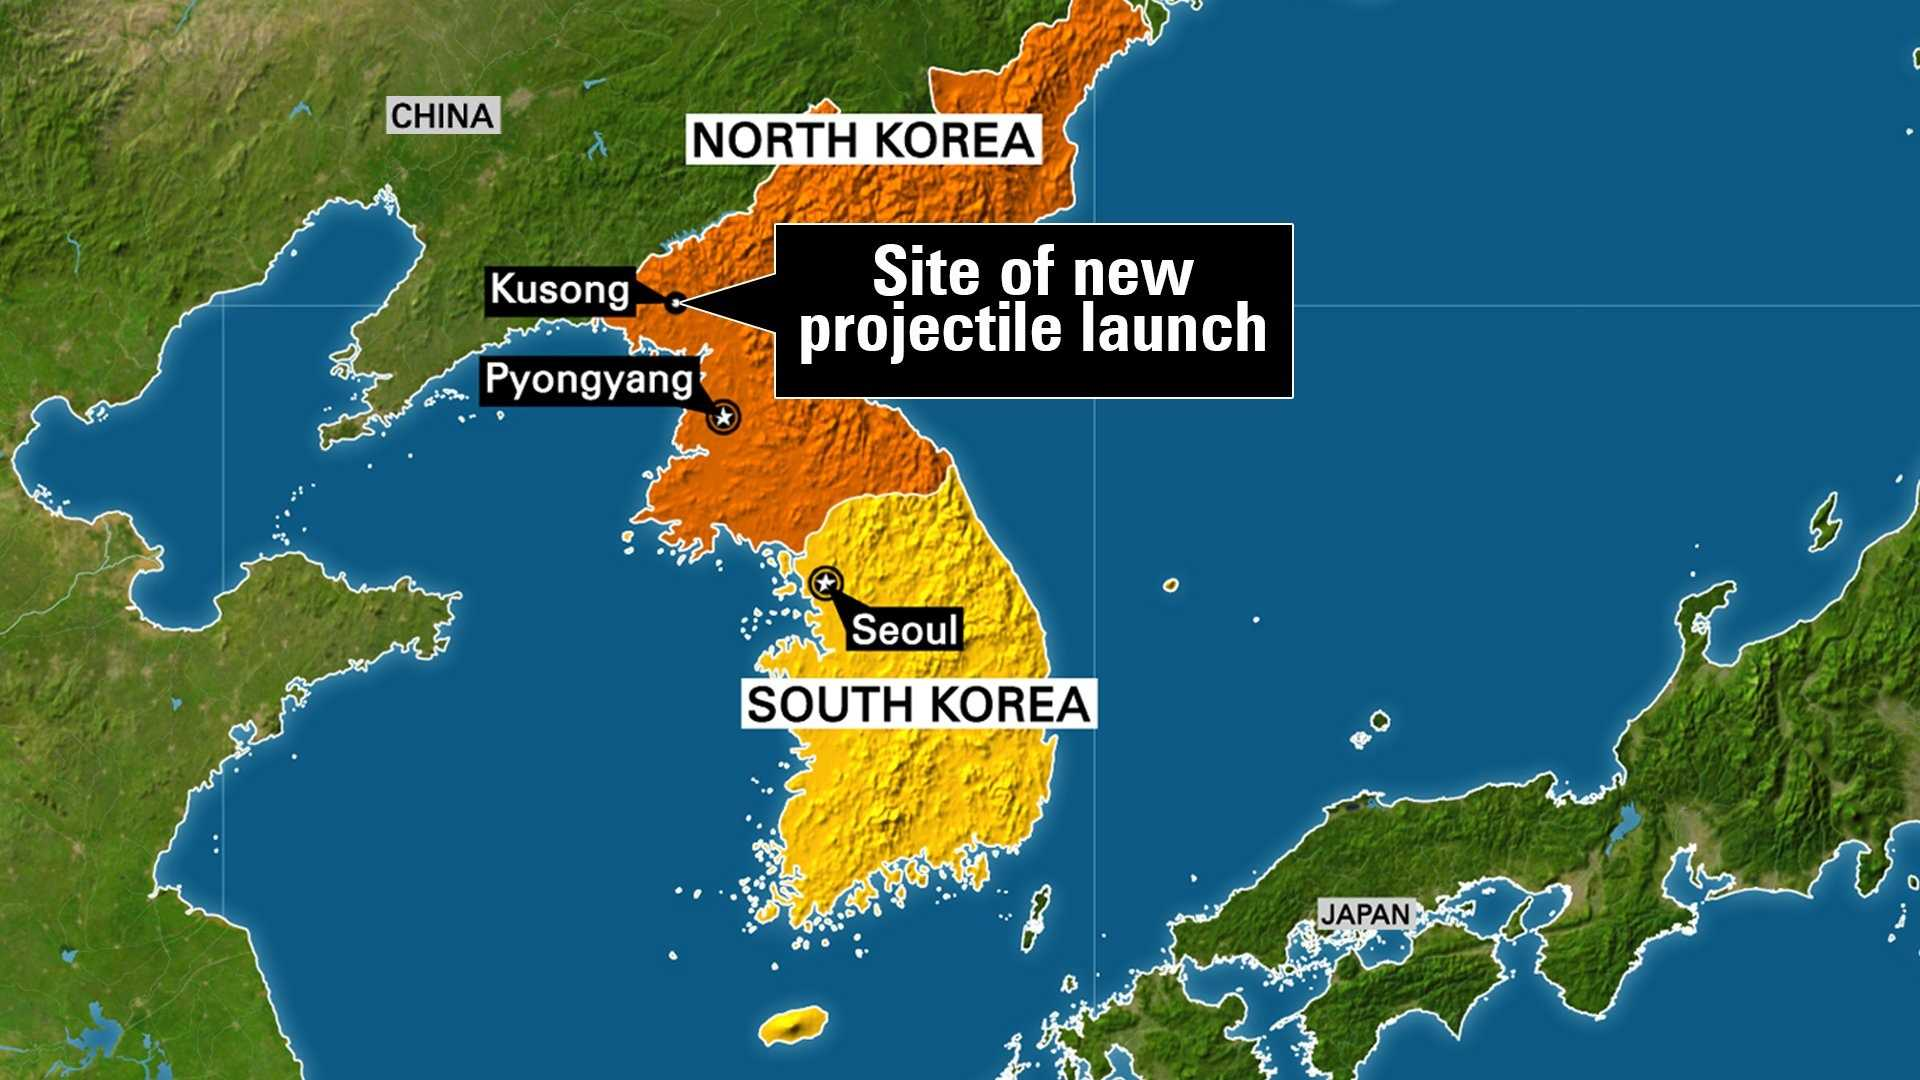 North Korea launched a ballistic missile from the northwestern part of the country early Sunday, the South Korean Joints Chief of Staff said.